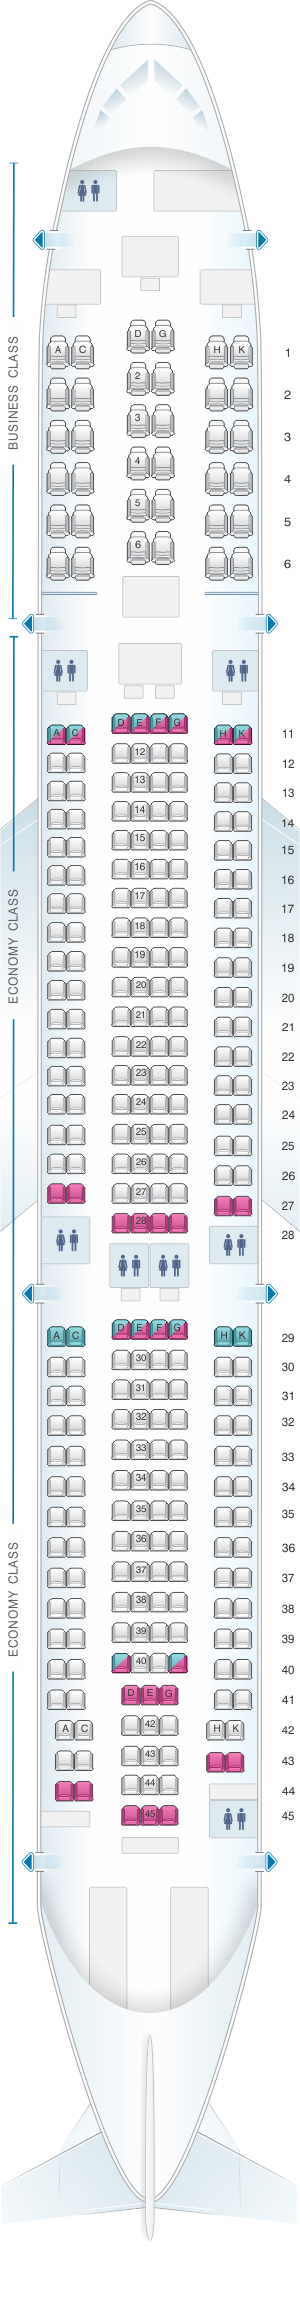 Seat map for Aeroflot Russian Airlines Airbus A330 300 Config.3